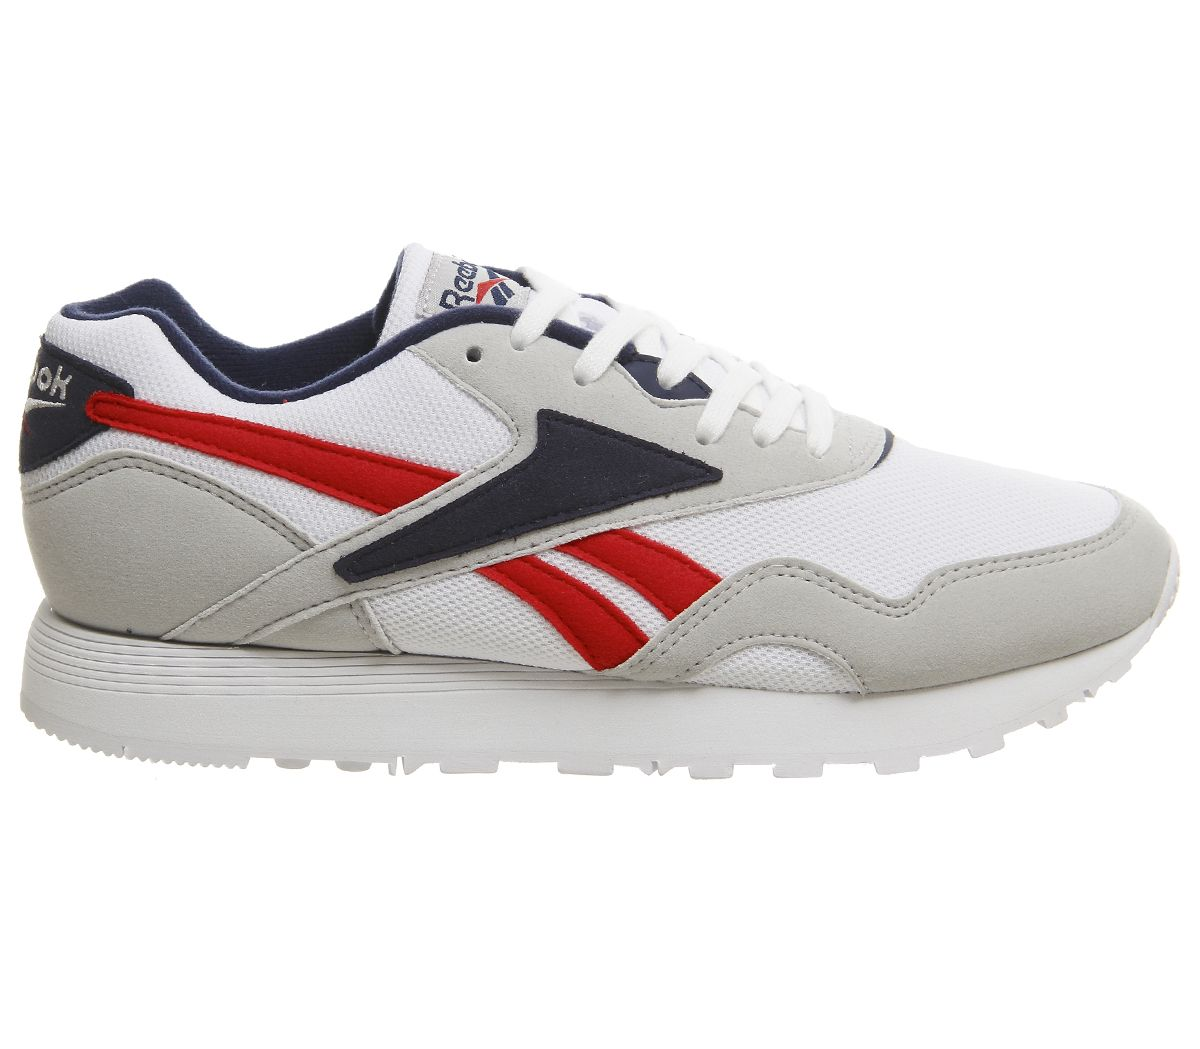 d89e8250 Details about Reebok Rapide Trainers Skull Grey Collegiate Navy White  Trainers Shoes